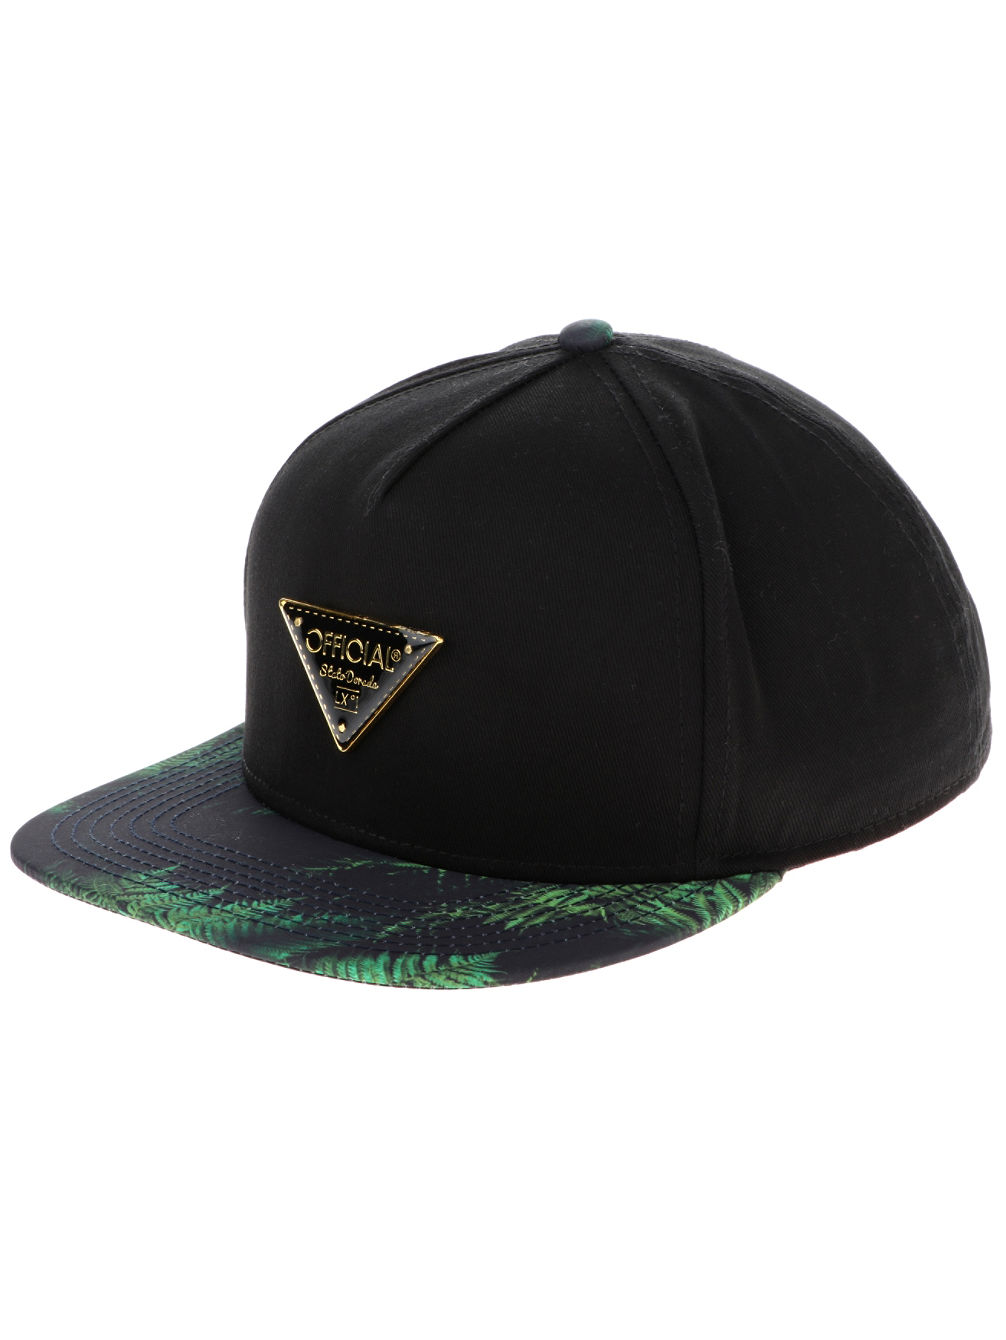 the-official-ferns-crown-cap